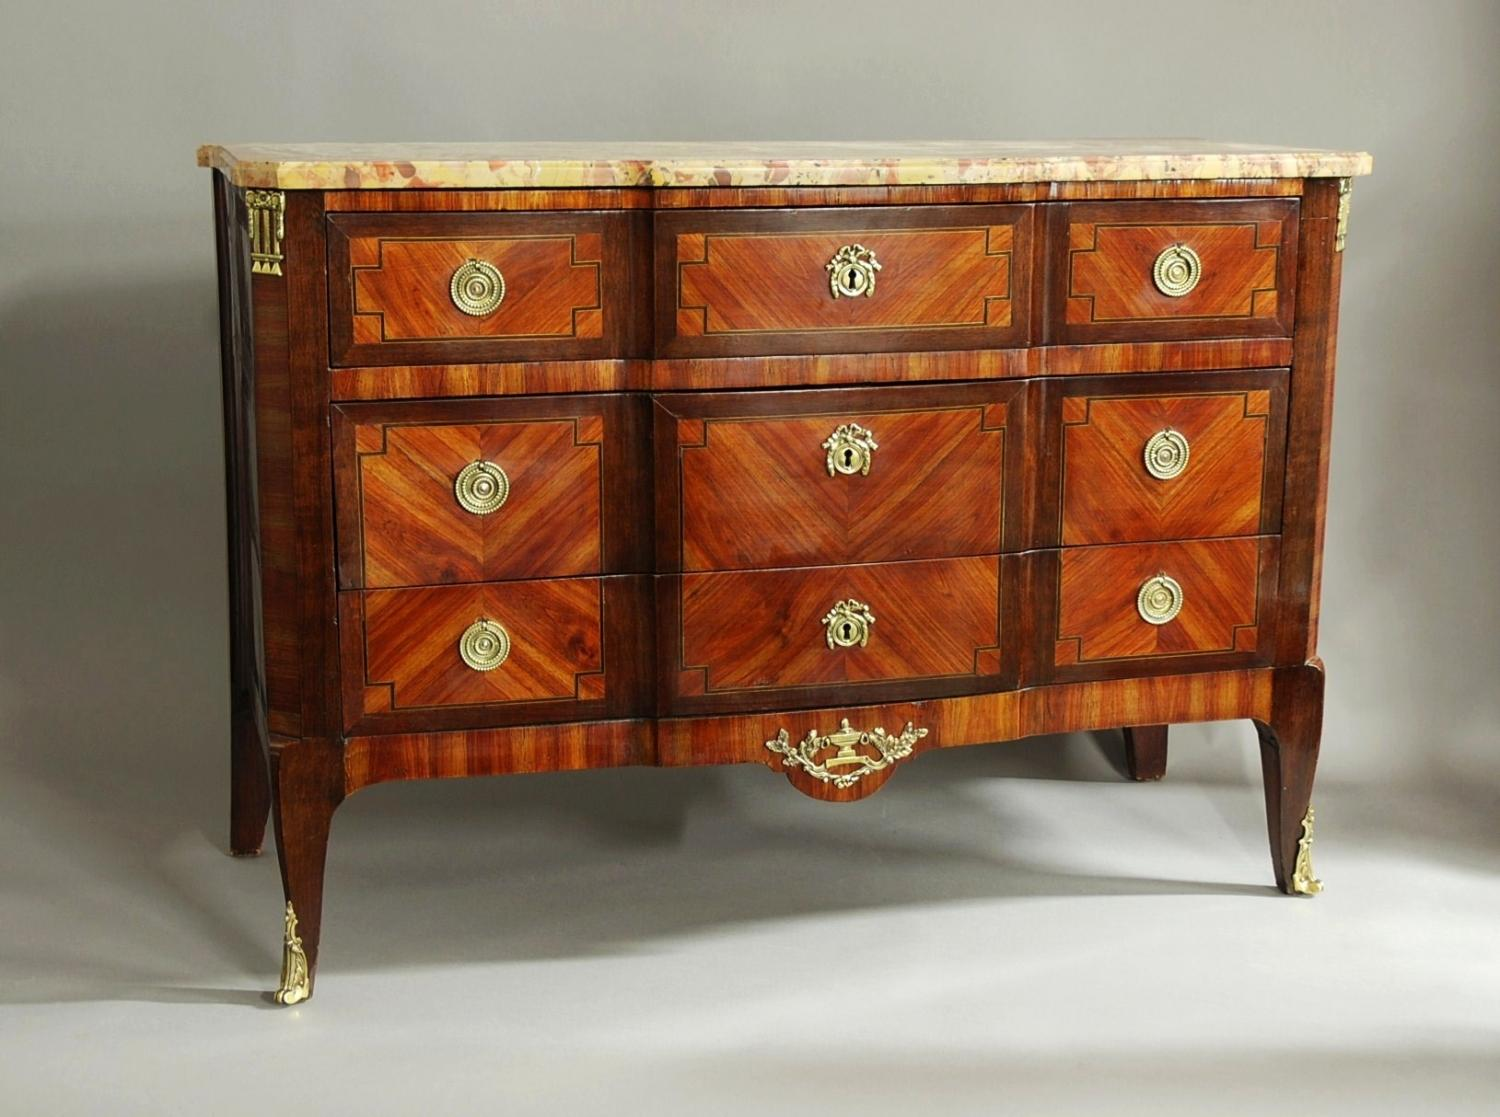 French 19thc Louis XVI style Kingwood commode